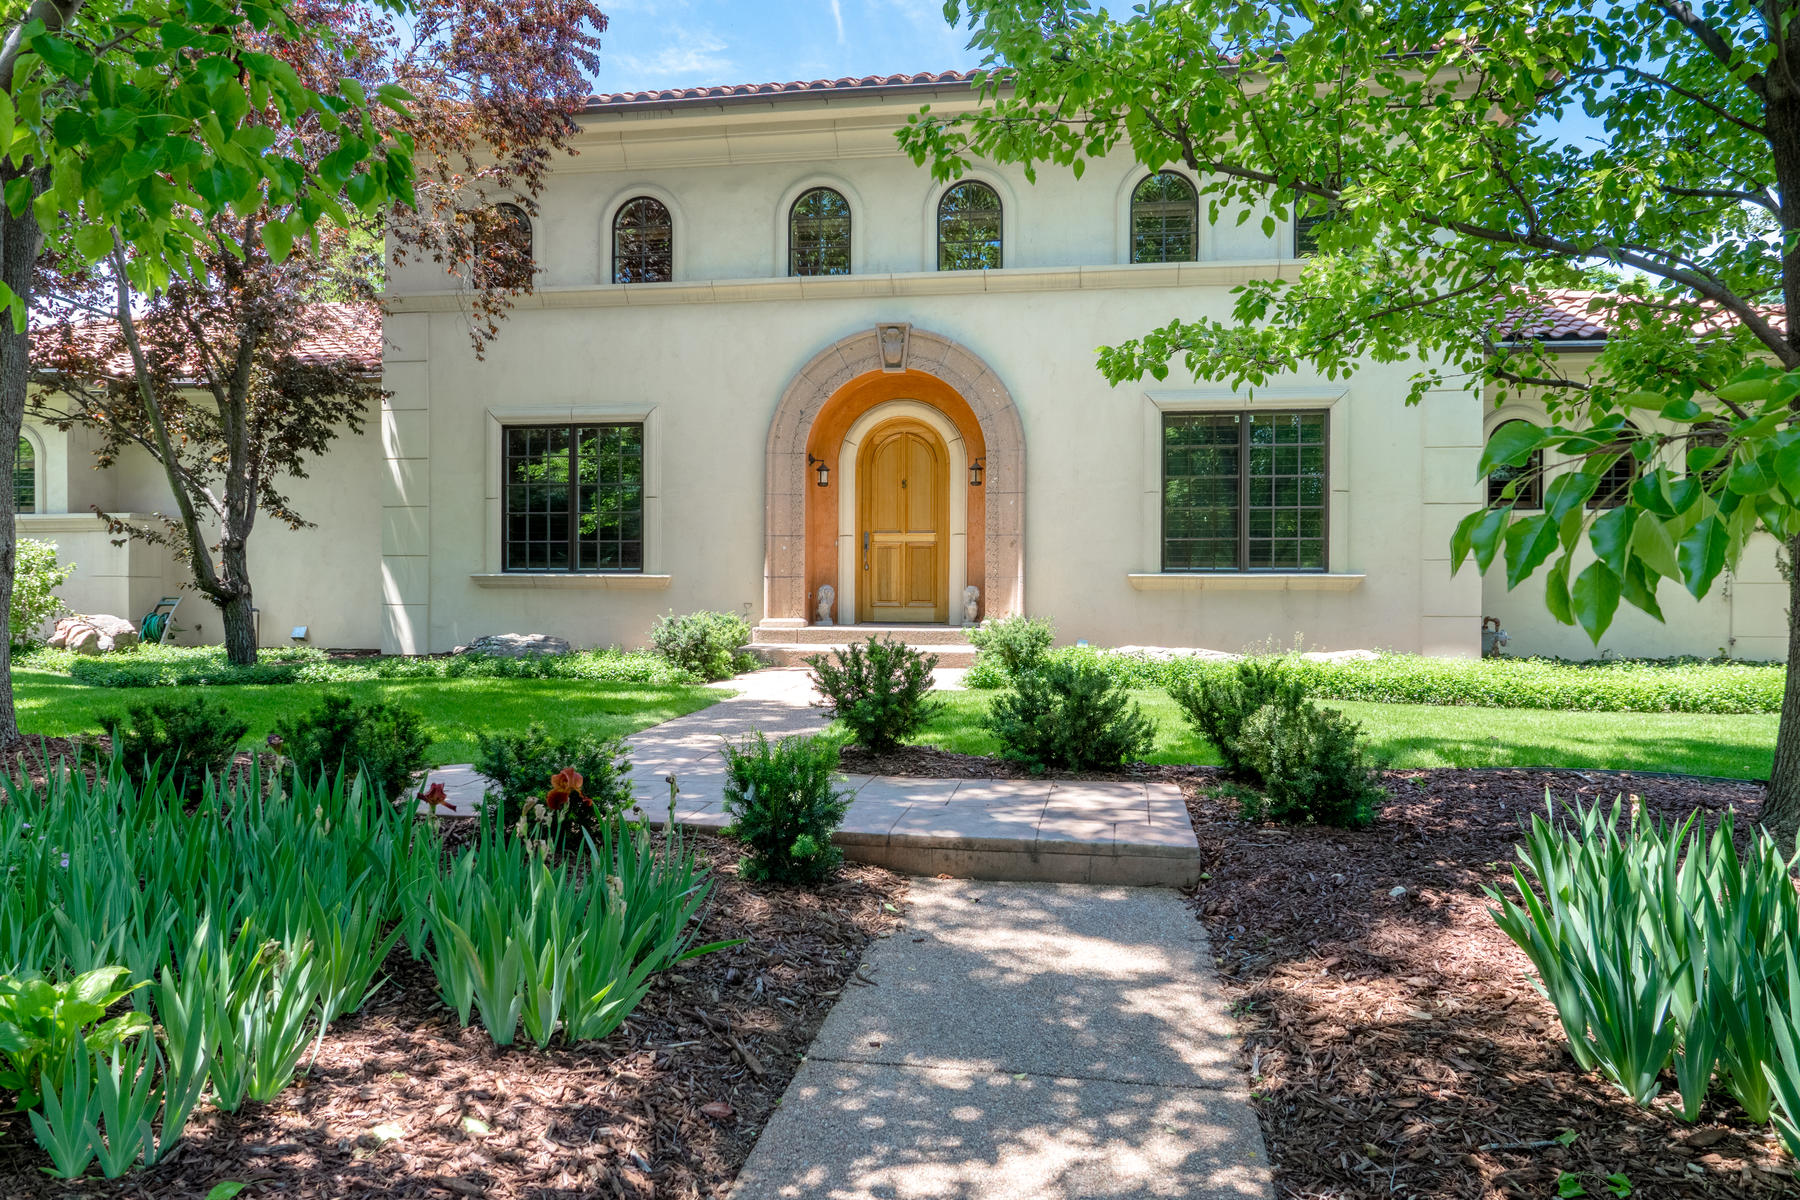 Single Family Home for Active at Graceful Italian Villa Styling in sought after gated Buell Mansion Homes 5 Gray Owl Rd Cherry Hills Village, Colorado 80113 United States